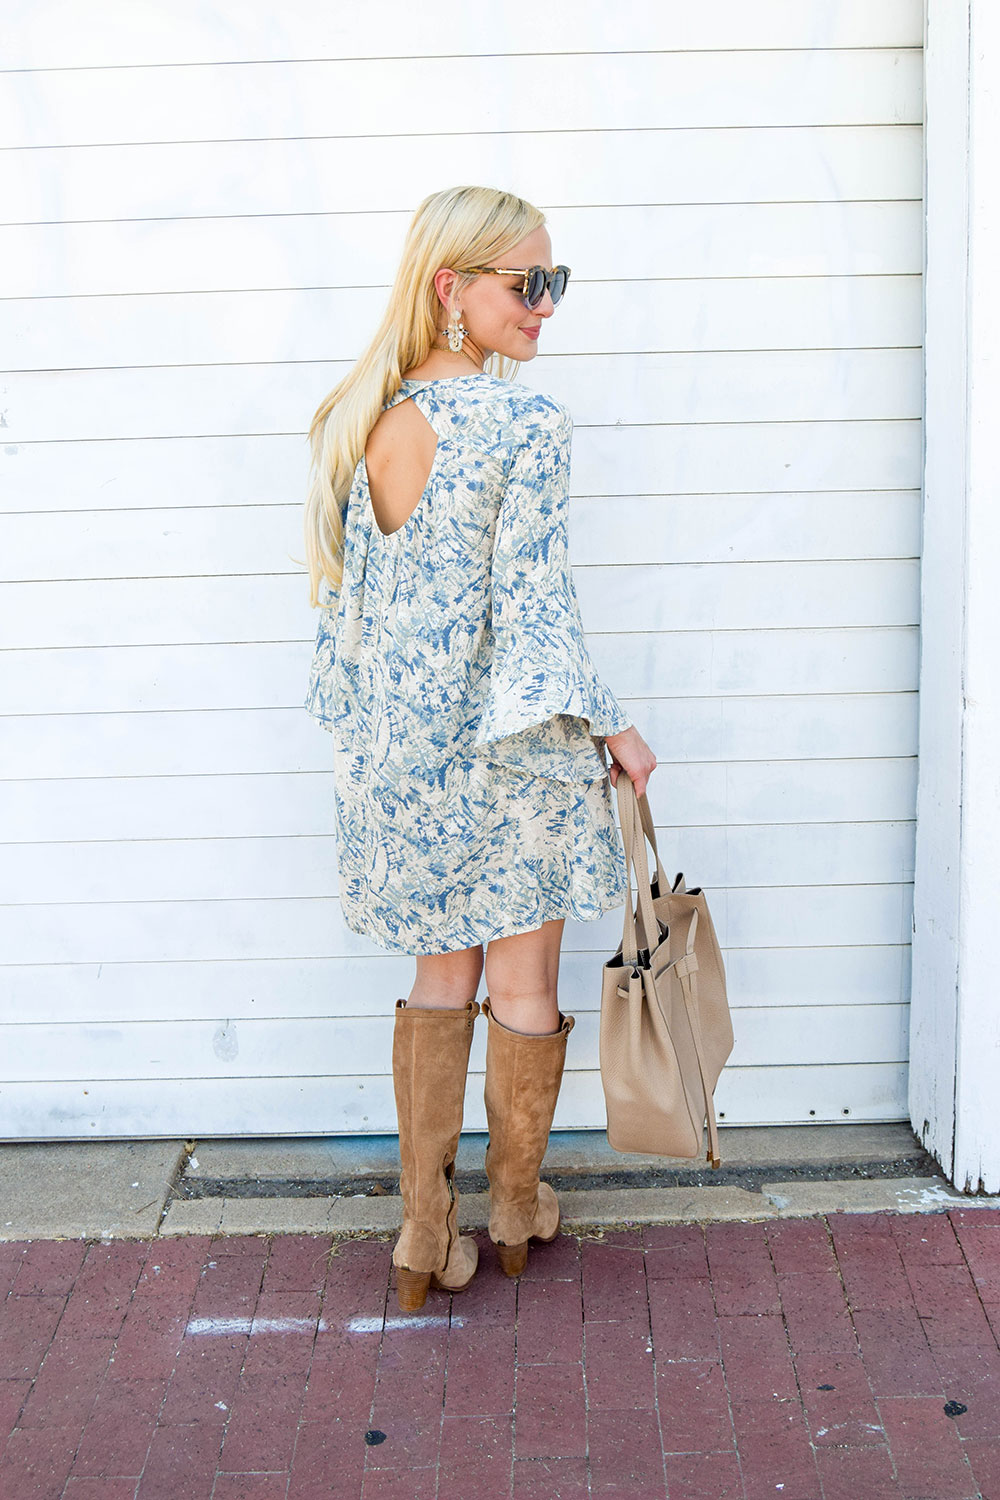 vandi-fair-dallas-fashion-blog-lauren-vandiver-southern-blogger-lush-whitney-bell-sleeve-woven-shift-dress-open-back-ugg-ava-tall-water-resistant-suede-boot-chestnut-7